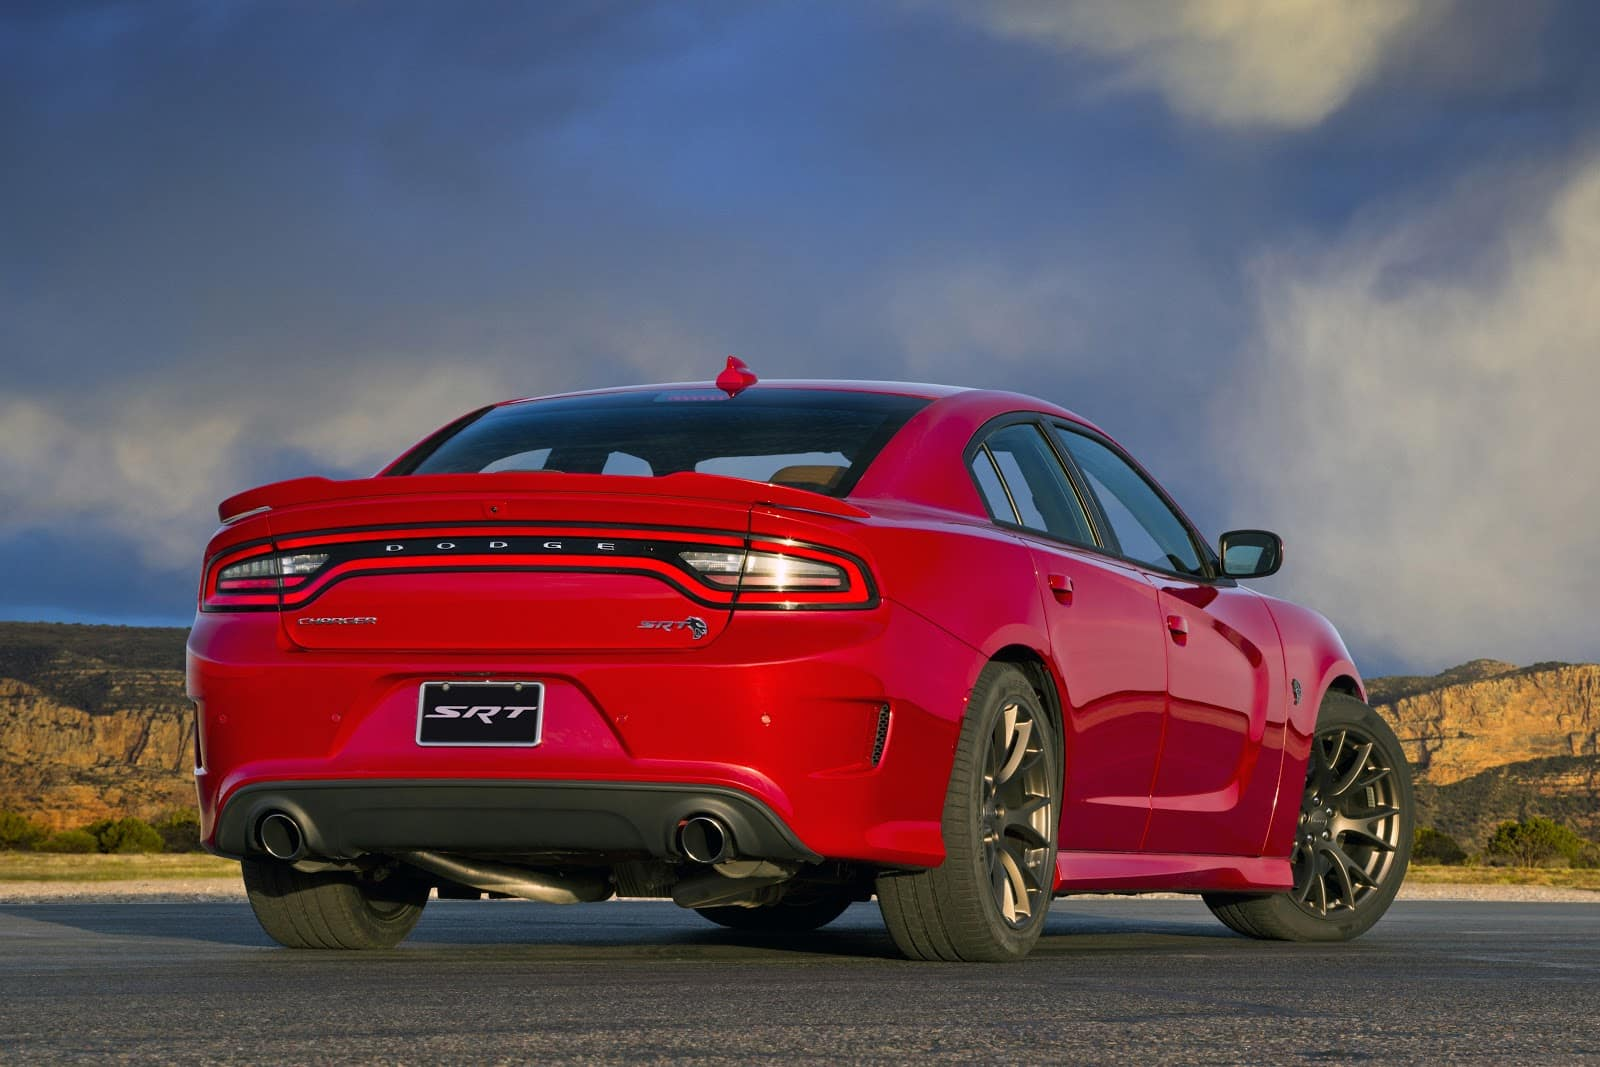 Red Dodge charger back facing user with SRT trim level displayed on tag with rear taillights